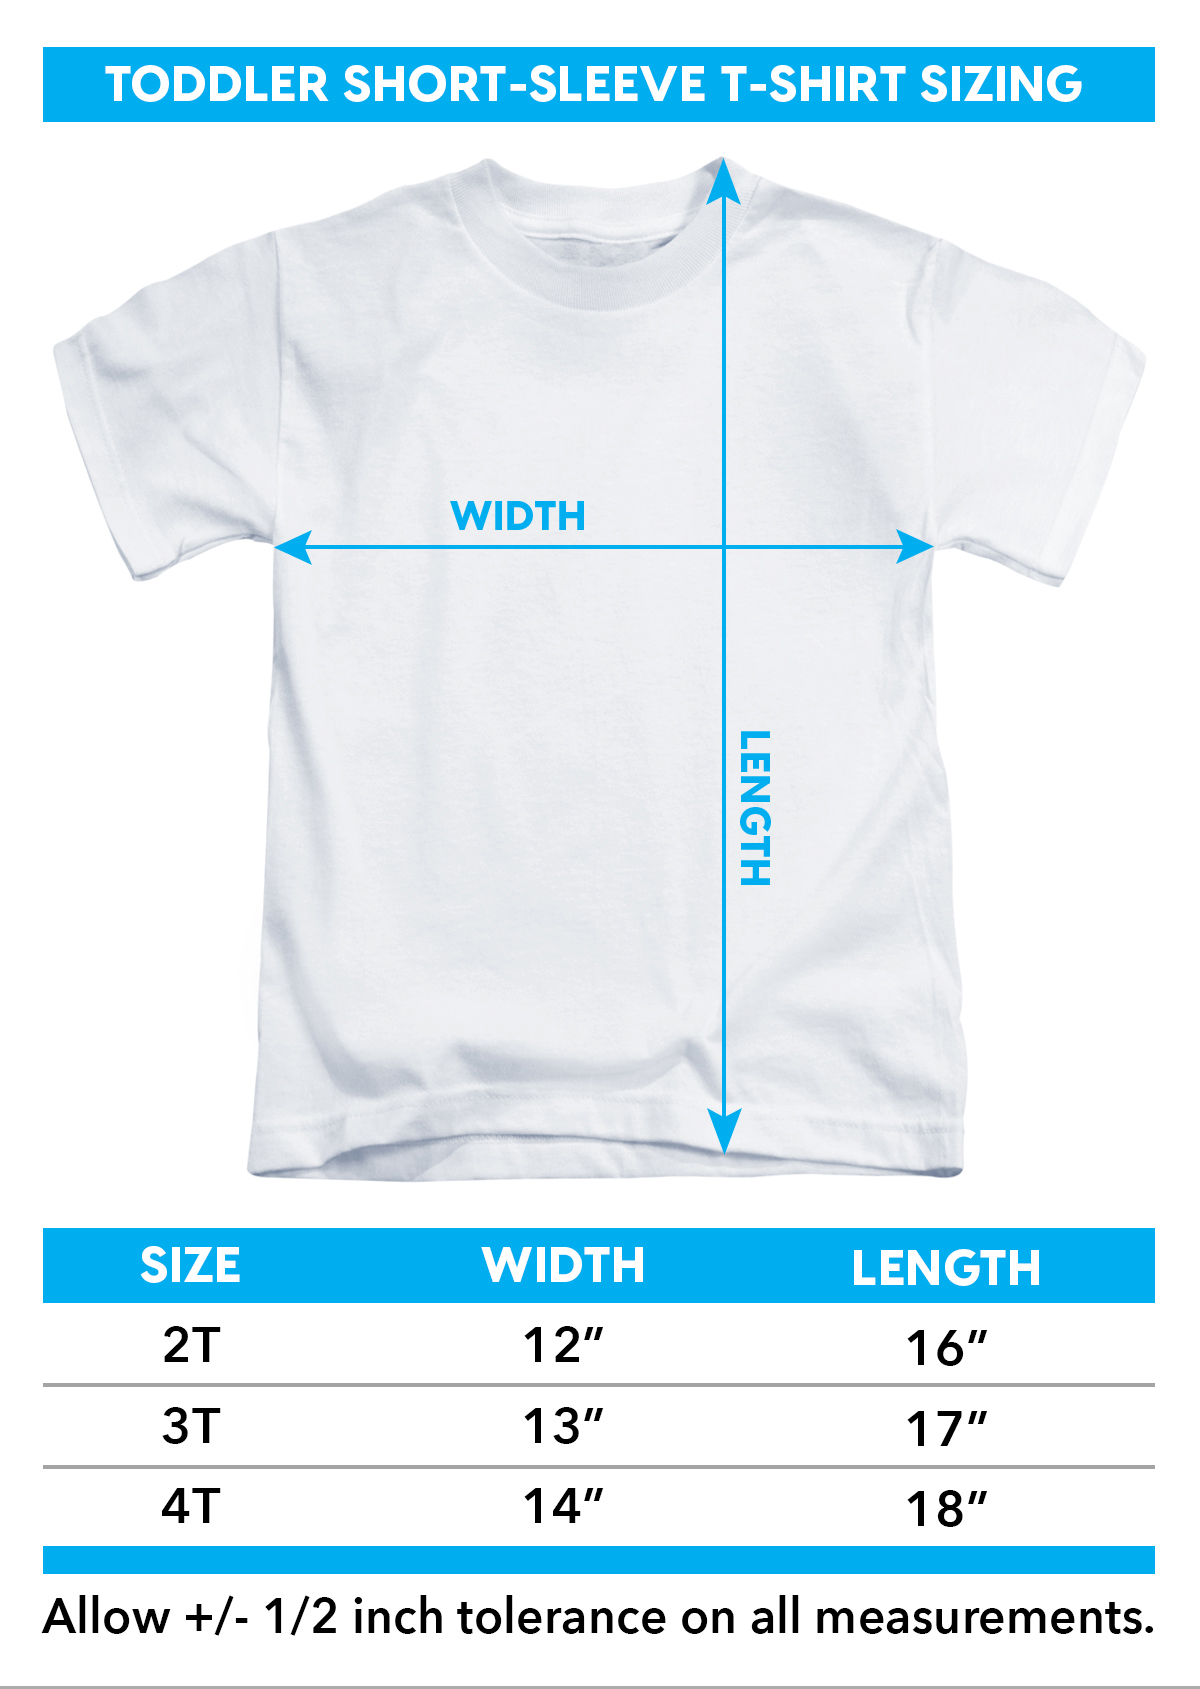 Sizing Chart for Batman Toddler T-Shirt - Robin Spotlight